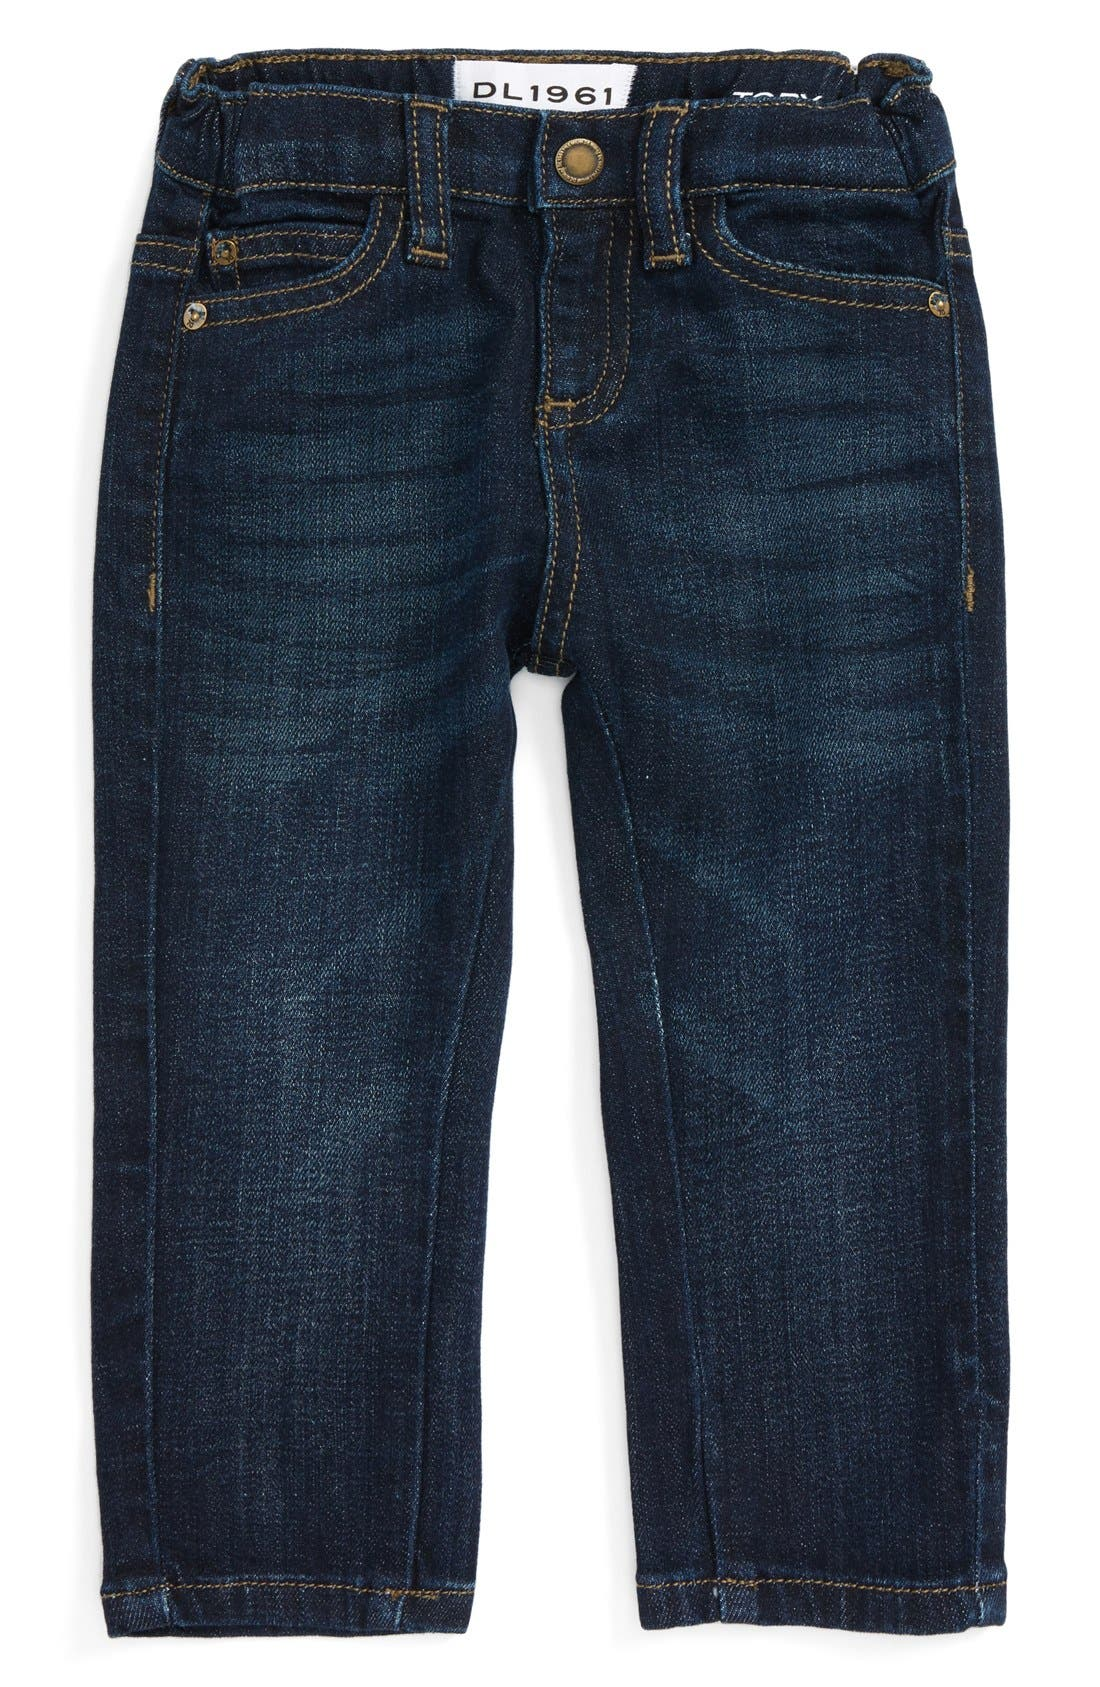 DL1961 'Toby' Slim Fit Jeans (Baby Boys)